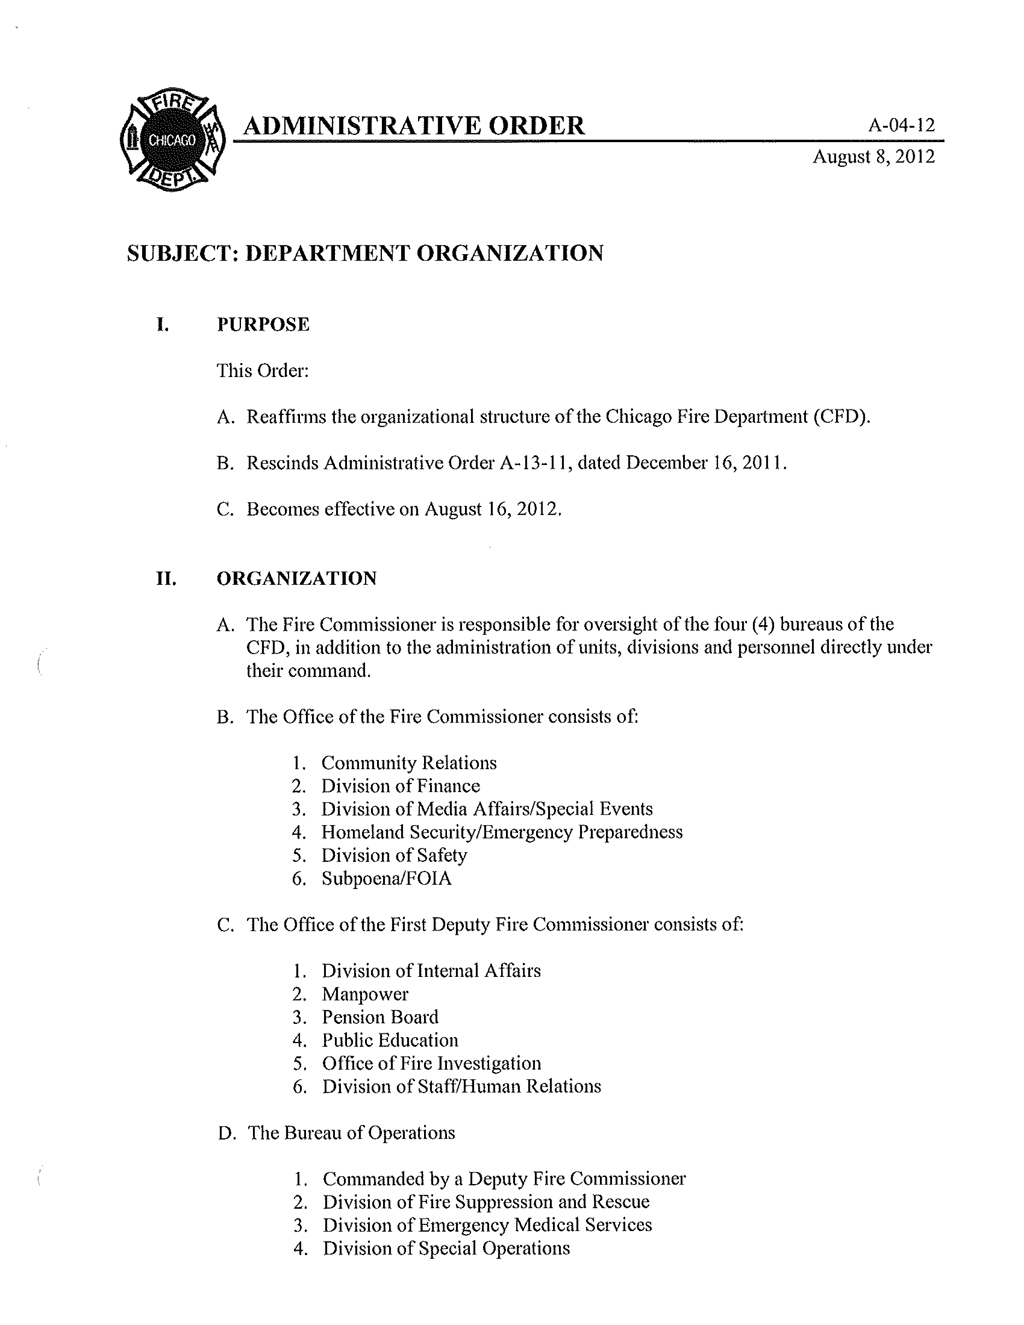 Chicago Fire Department Administrative Order A-04-12